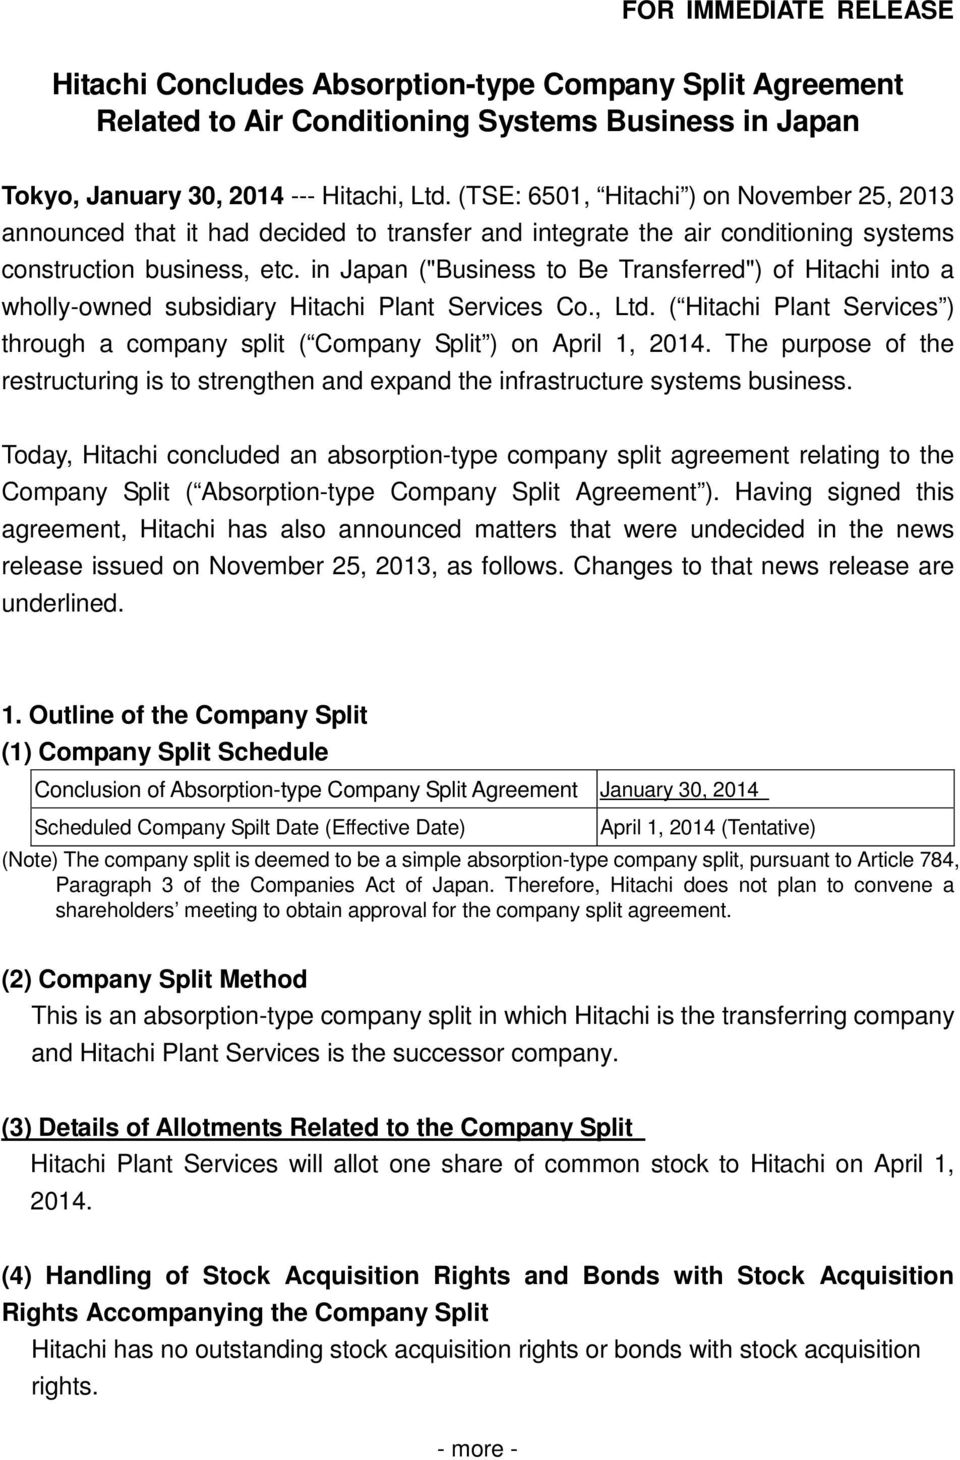 "in Japan (""Business to Be Transferred"") of Hitachi into a wholly-owned subsidiary Hitachi Plant Services Co., Ltd."